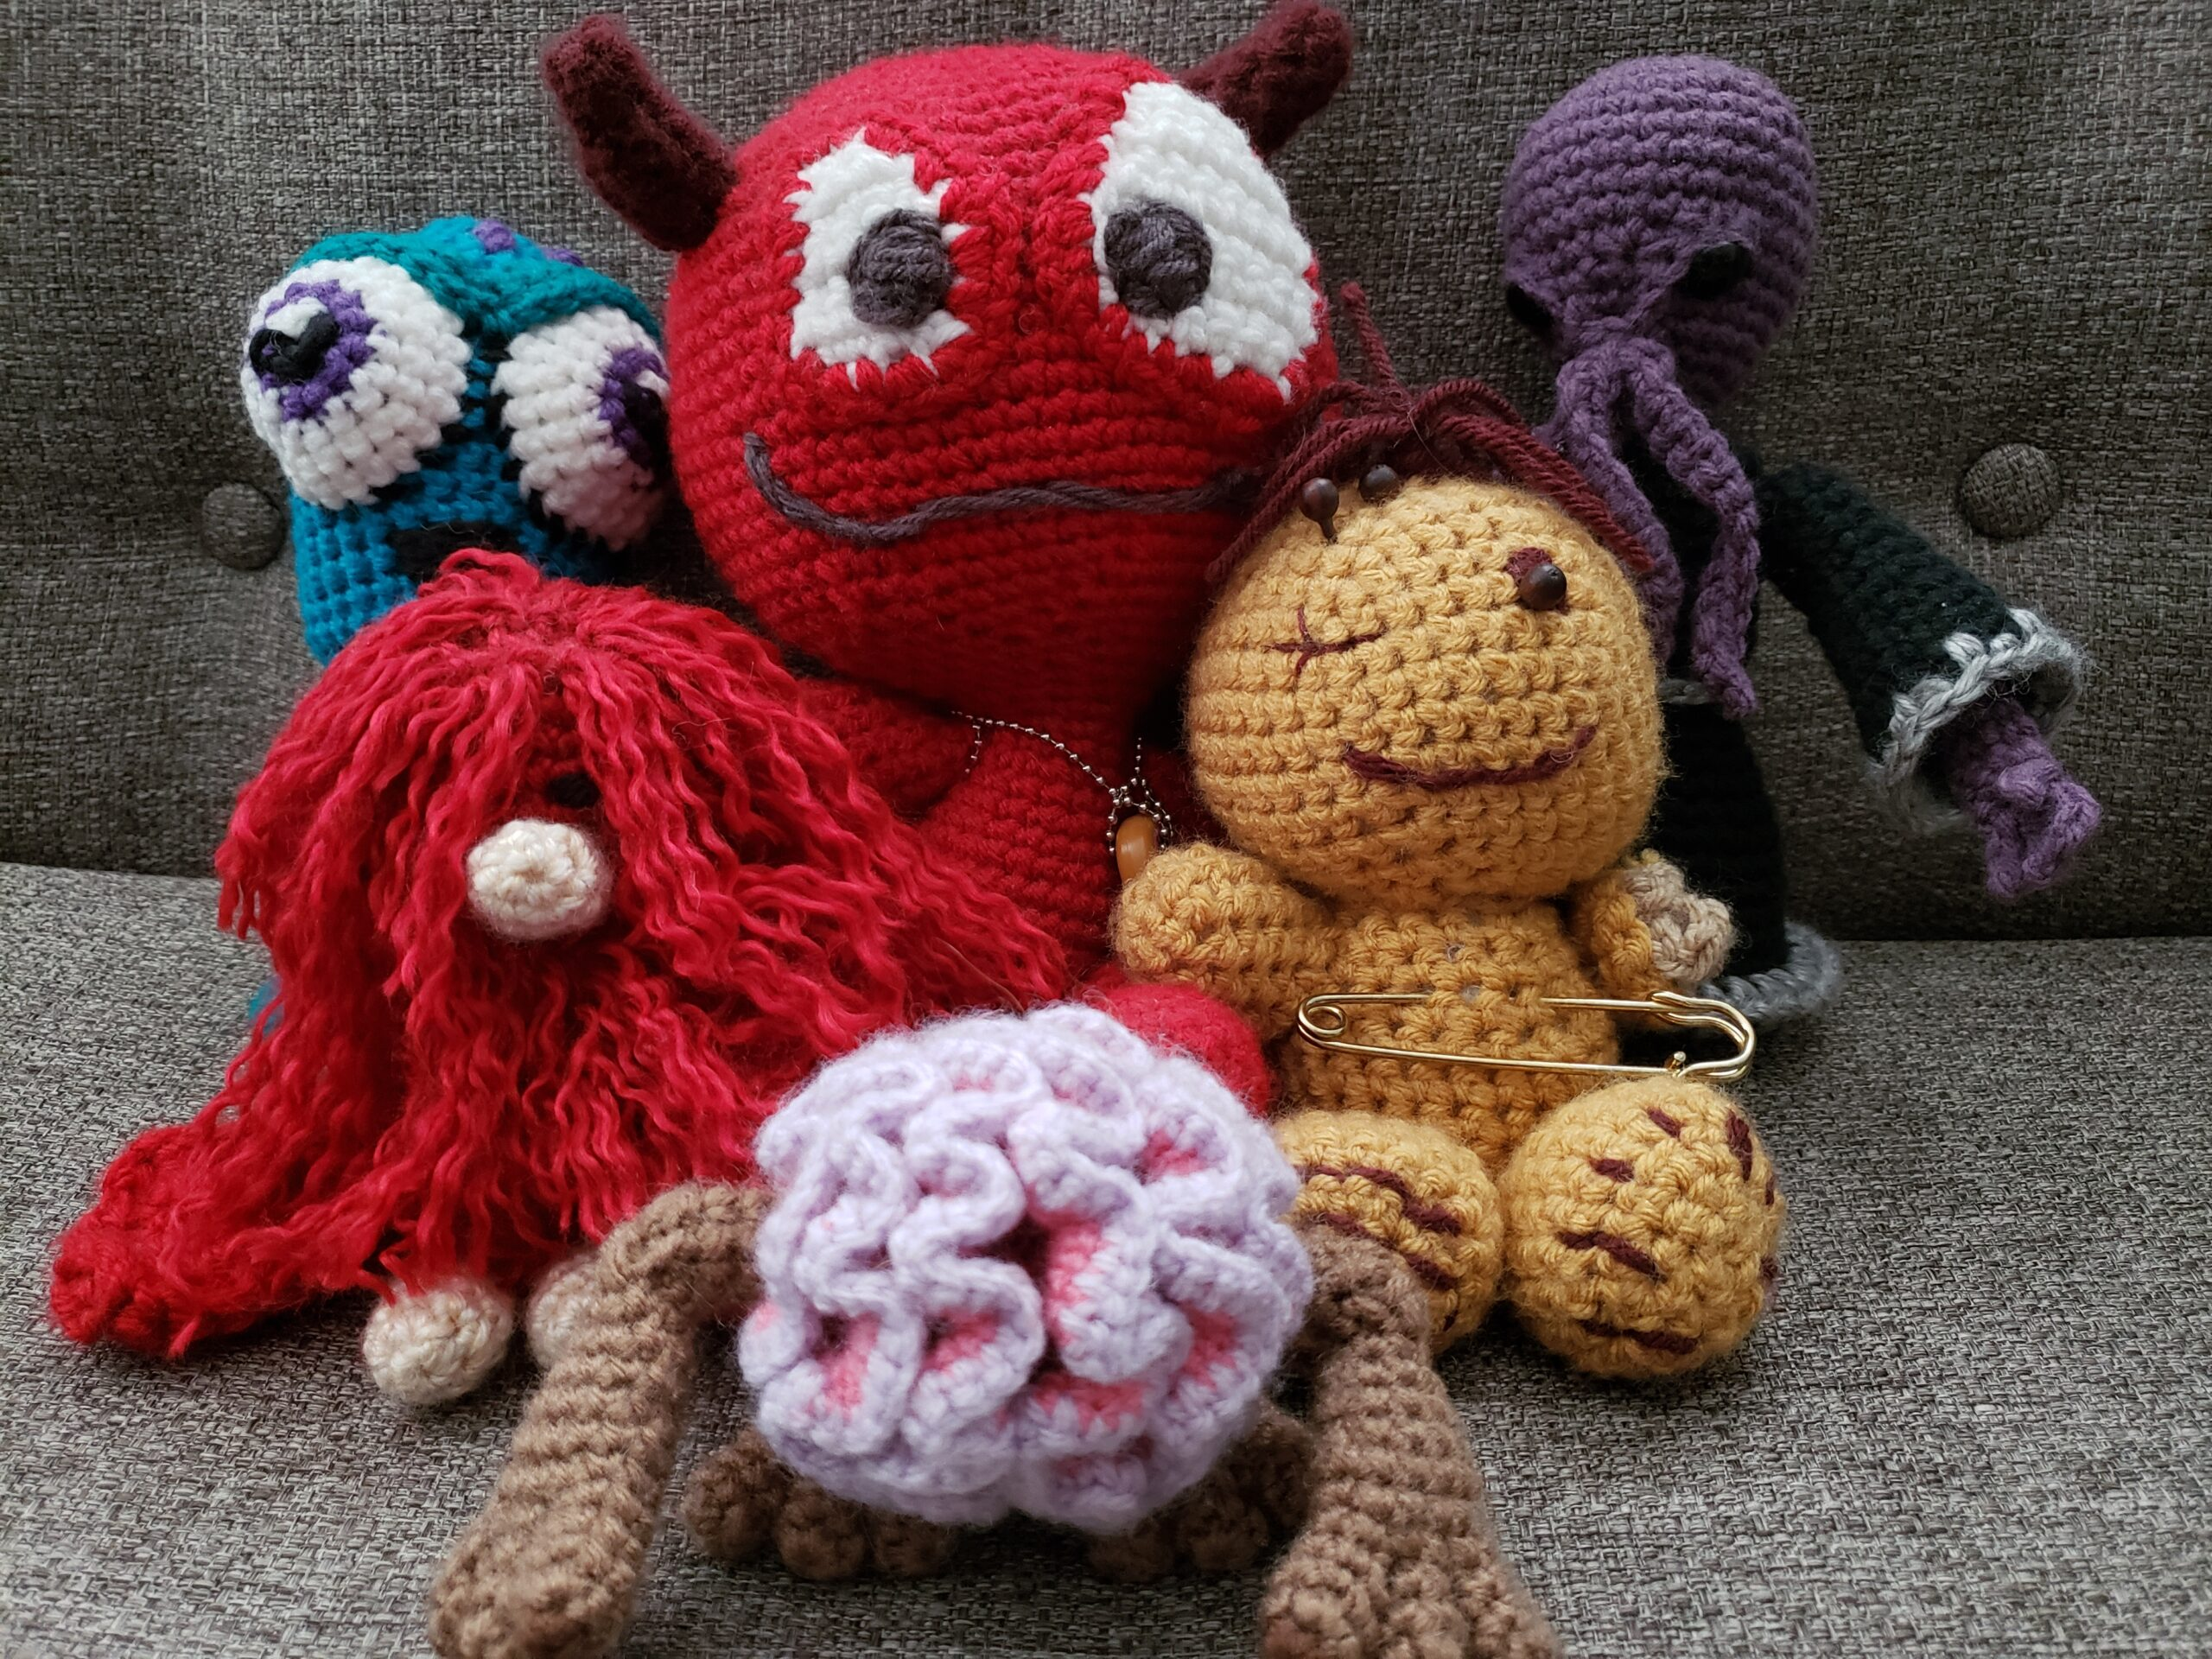 Several different crocheted amigurumi: a squid, a red yeti, a demon named Stinky, an ilithid, a voodoo doll, and an intelligence devourer